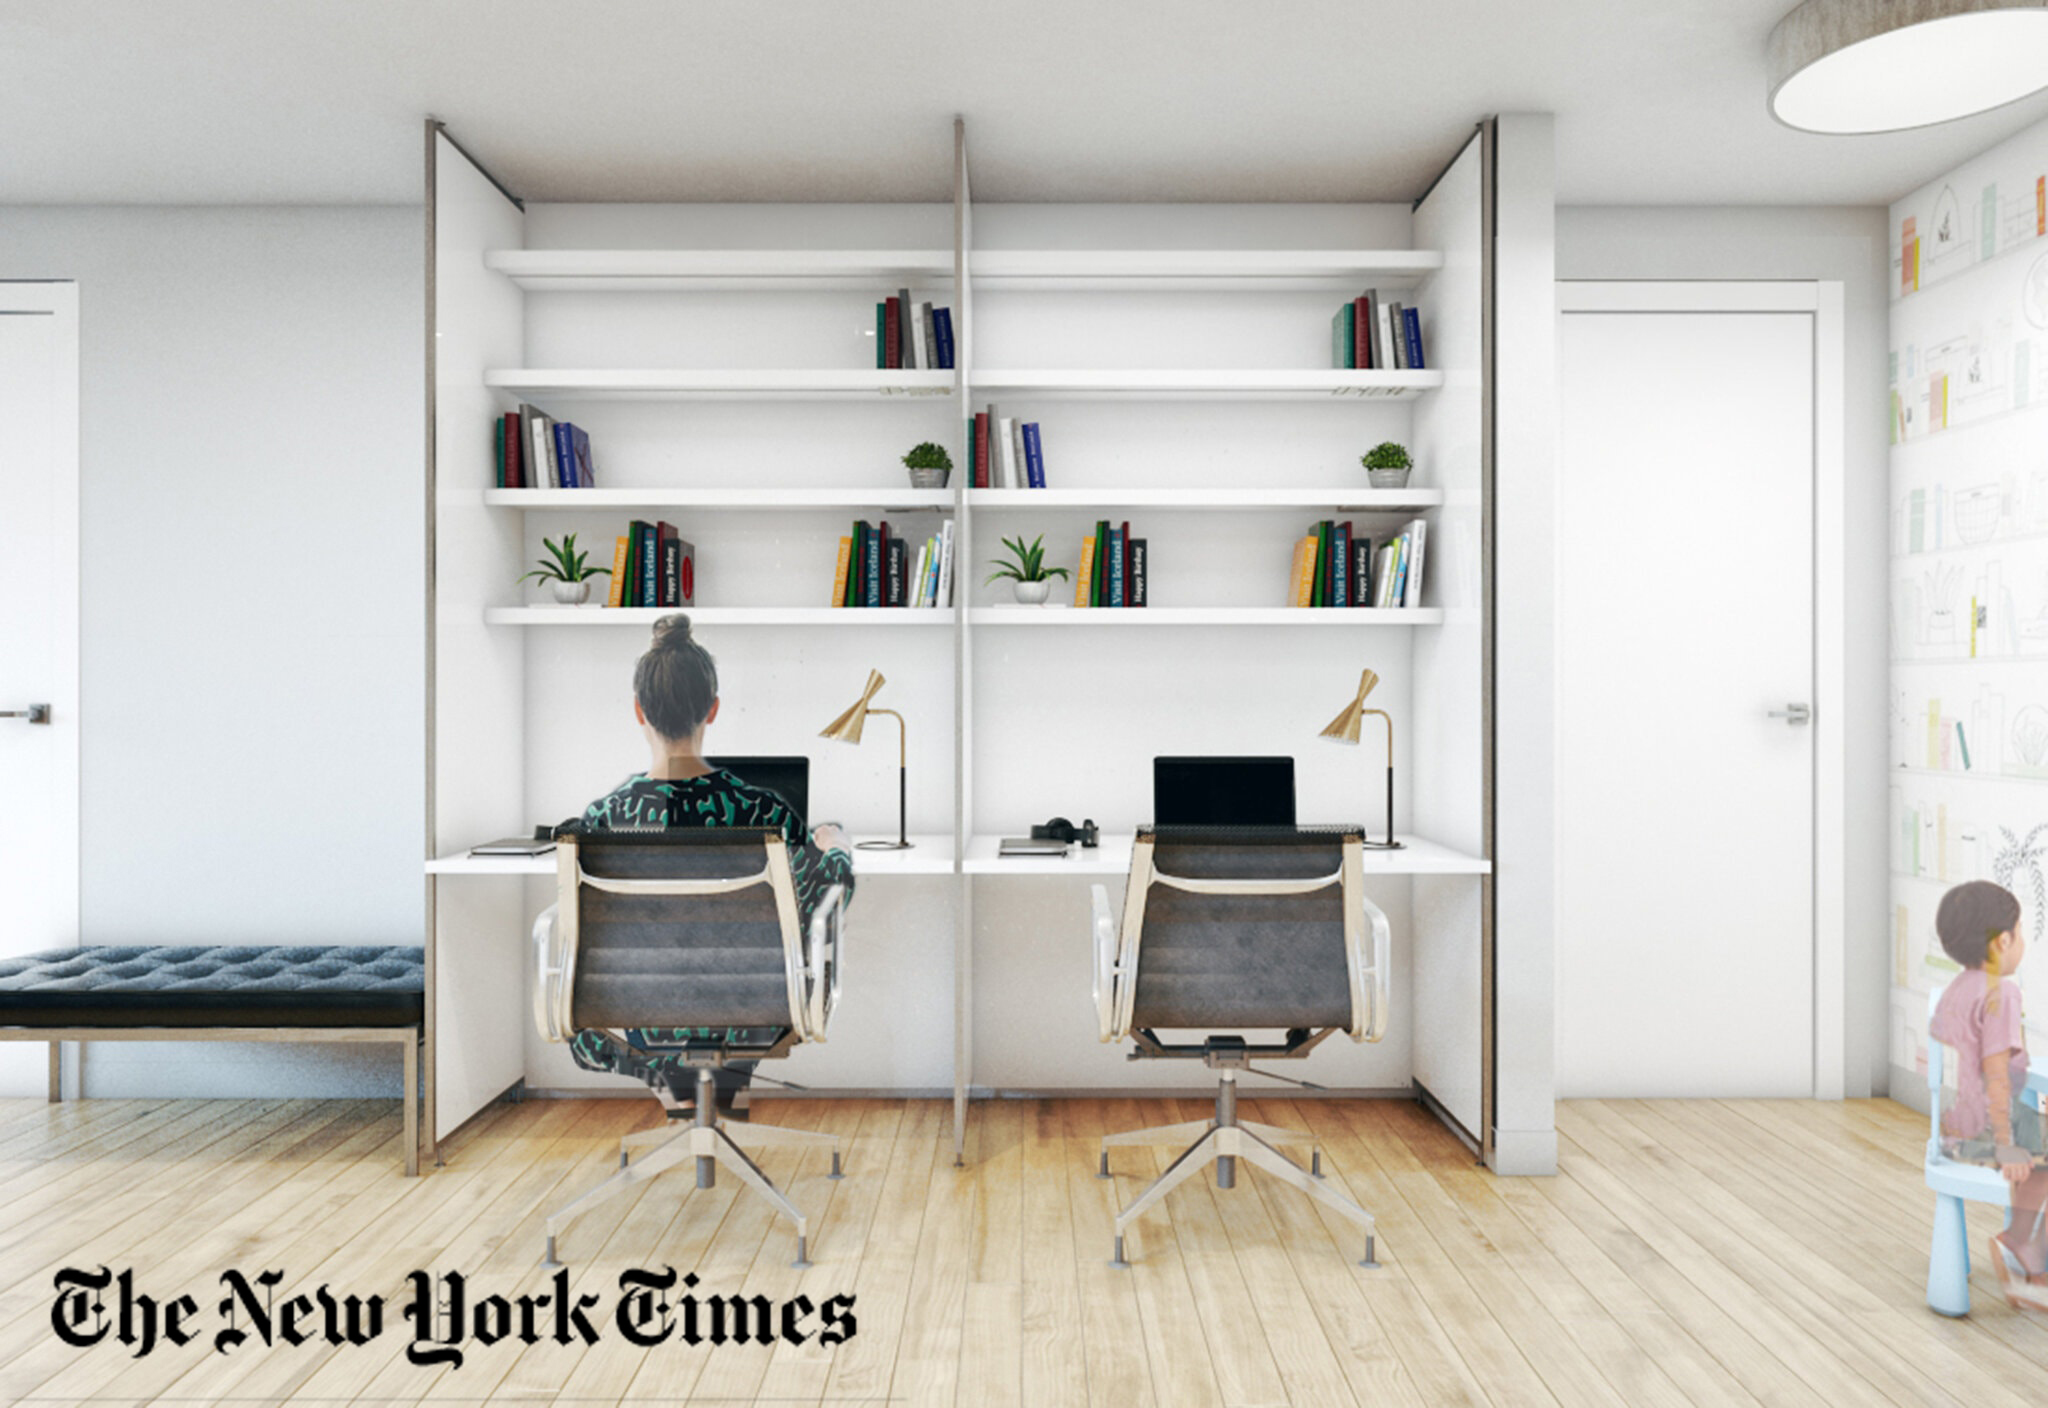 New York Times featured EXD Architecture's Double wall design solution